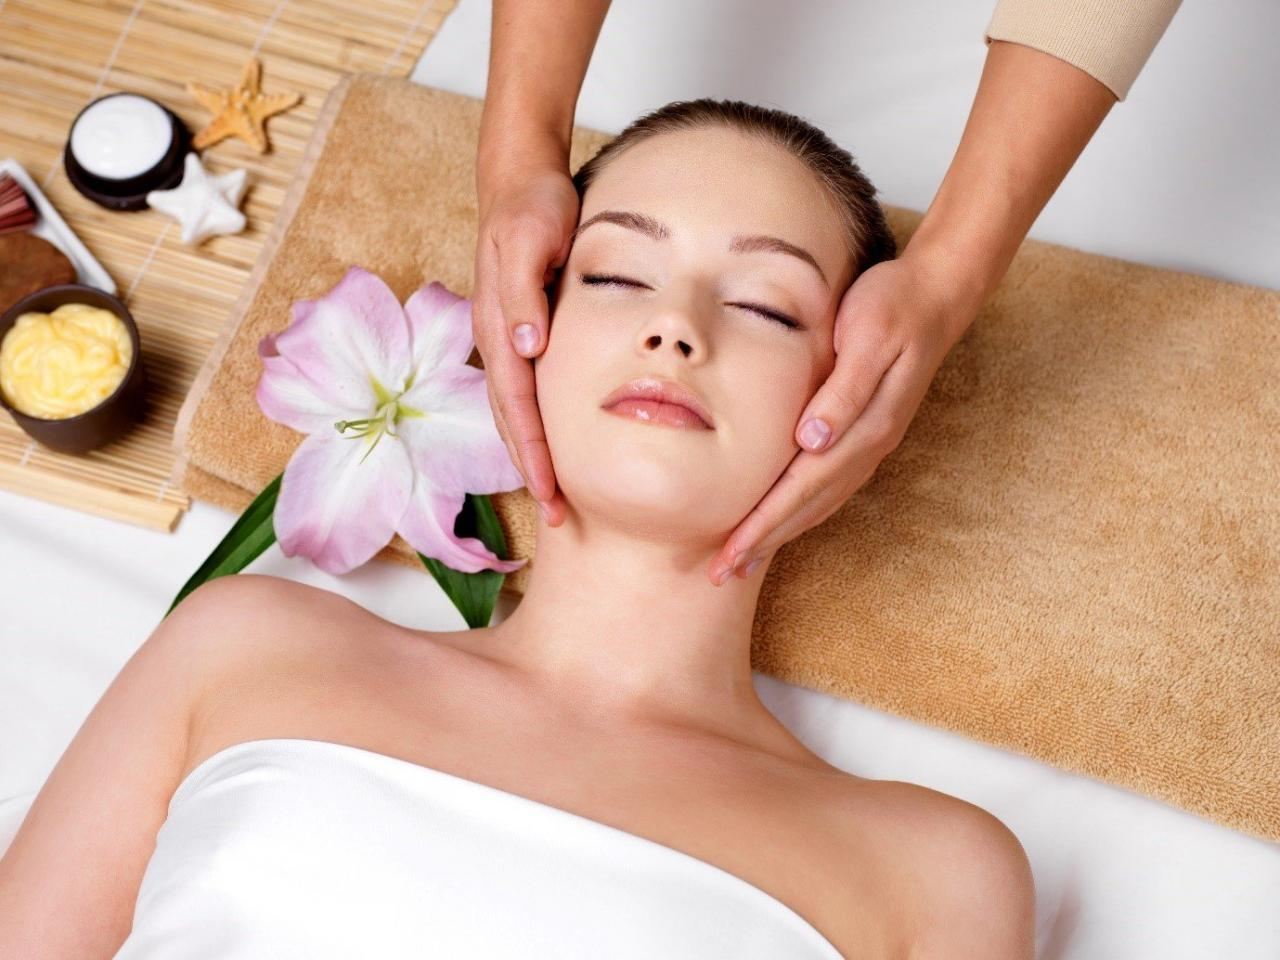 Nature's Moon Massage Therapy & Medspa In Burbank, CA